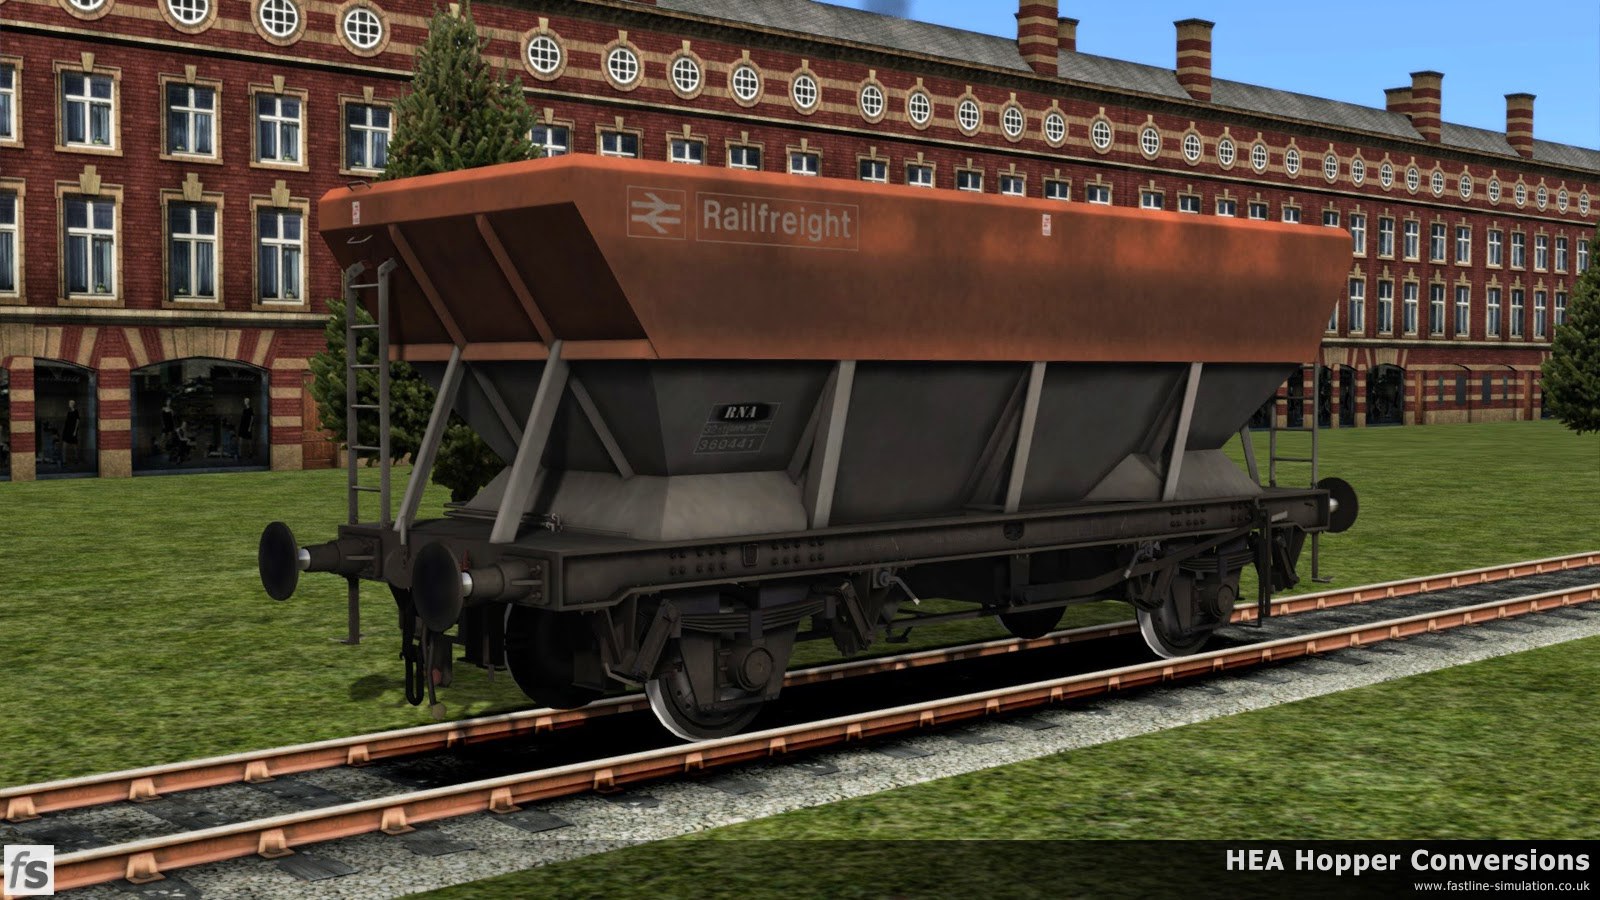 Fastline Simulation - HEA Conversions: This HEA hopper in grubby Railfreight flame read and grey livery has had a change of TOPS code to RNA to signify it is being used as a barrier wagon.